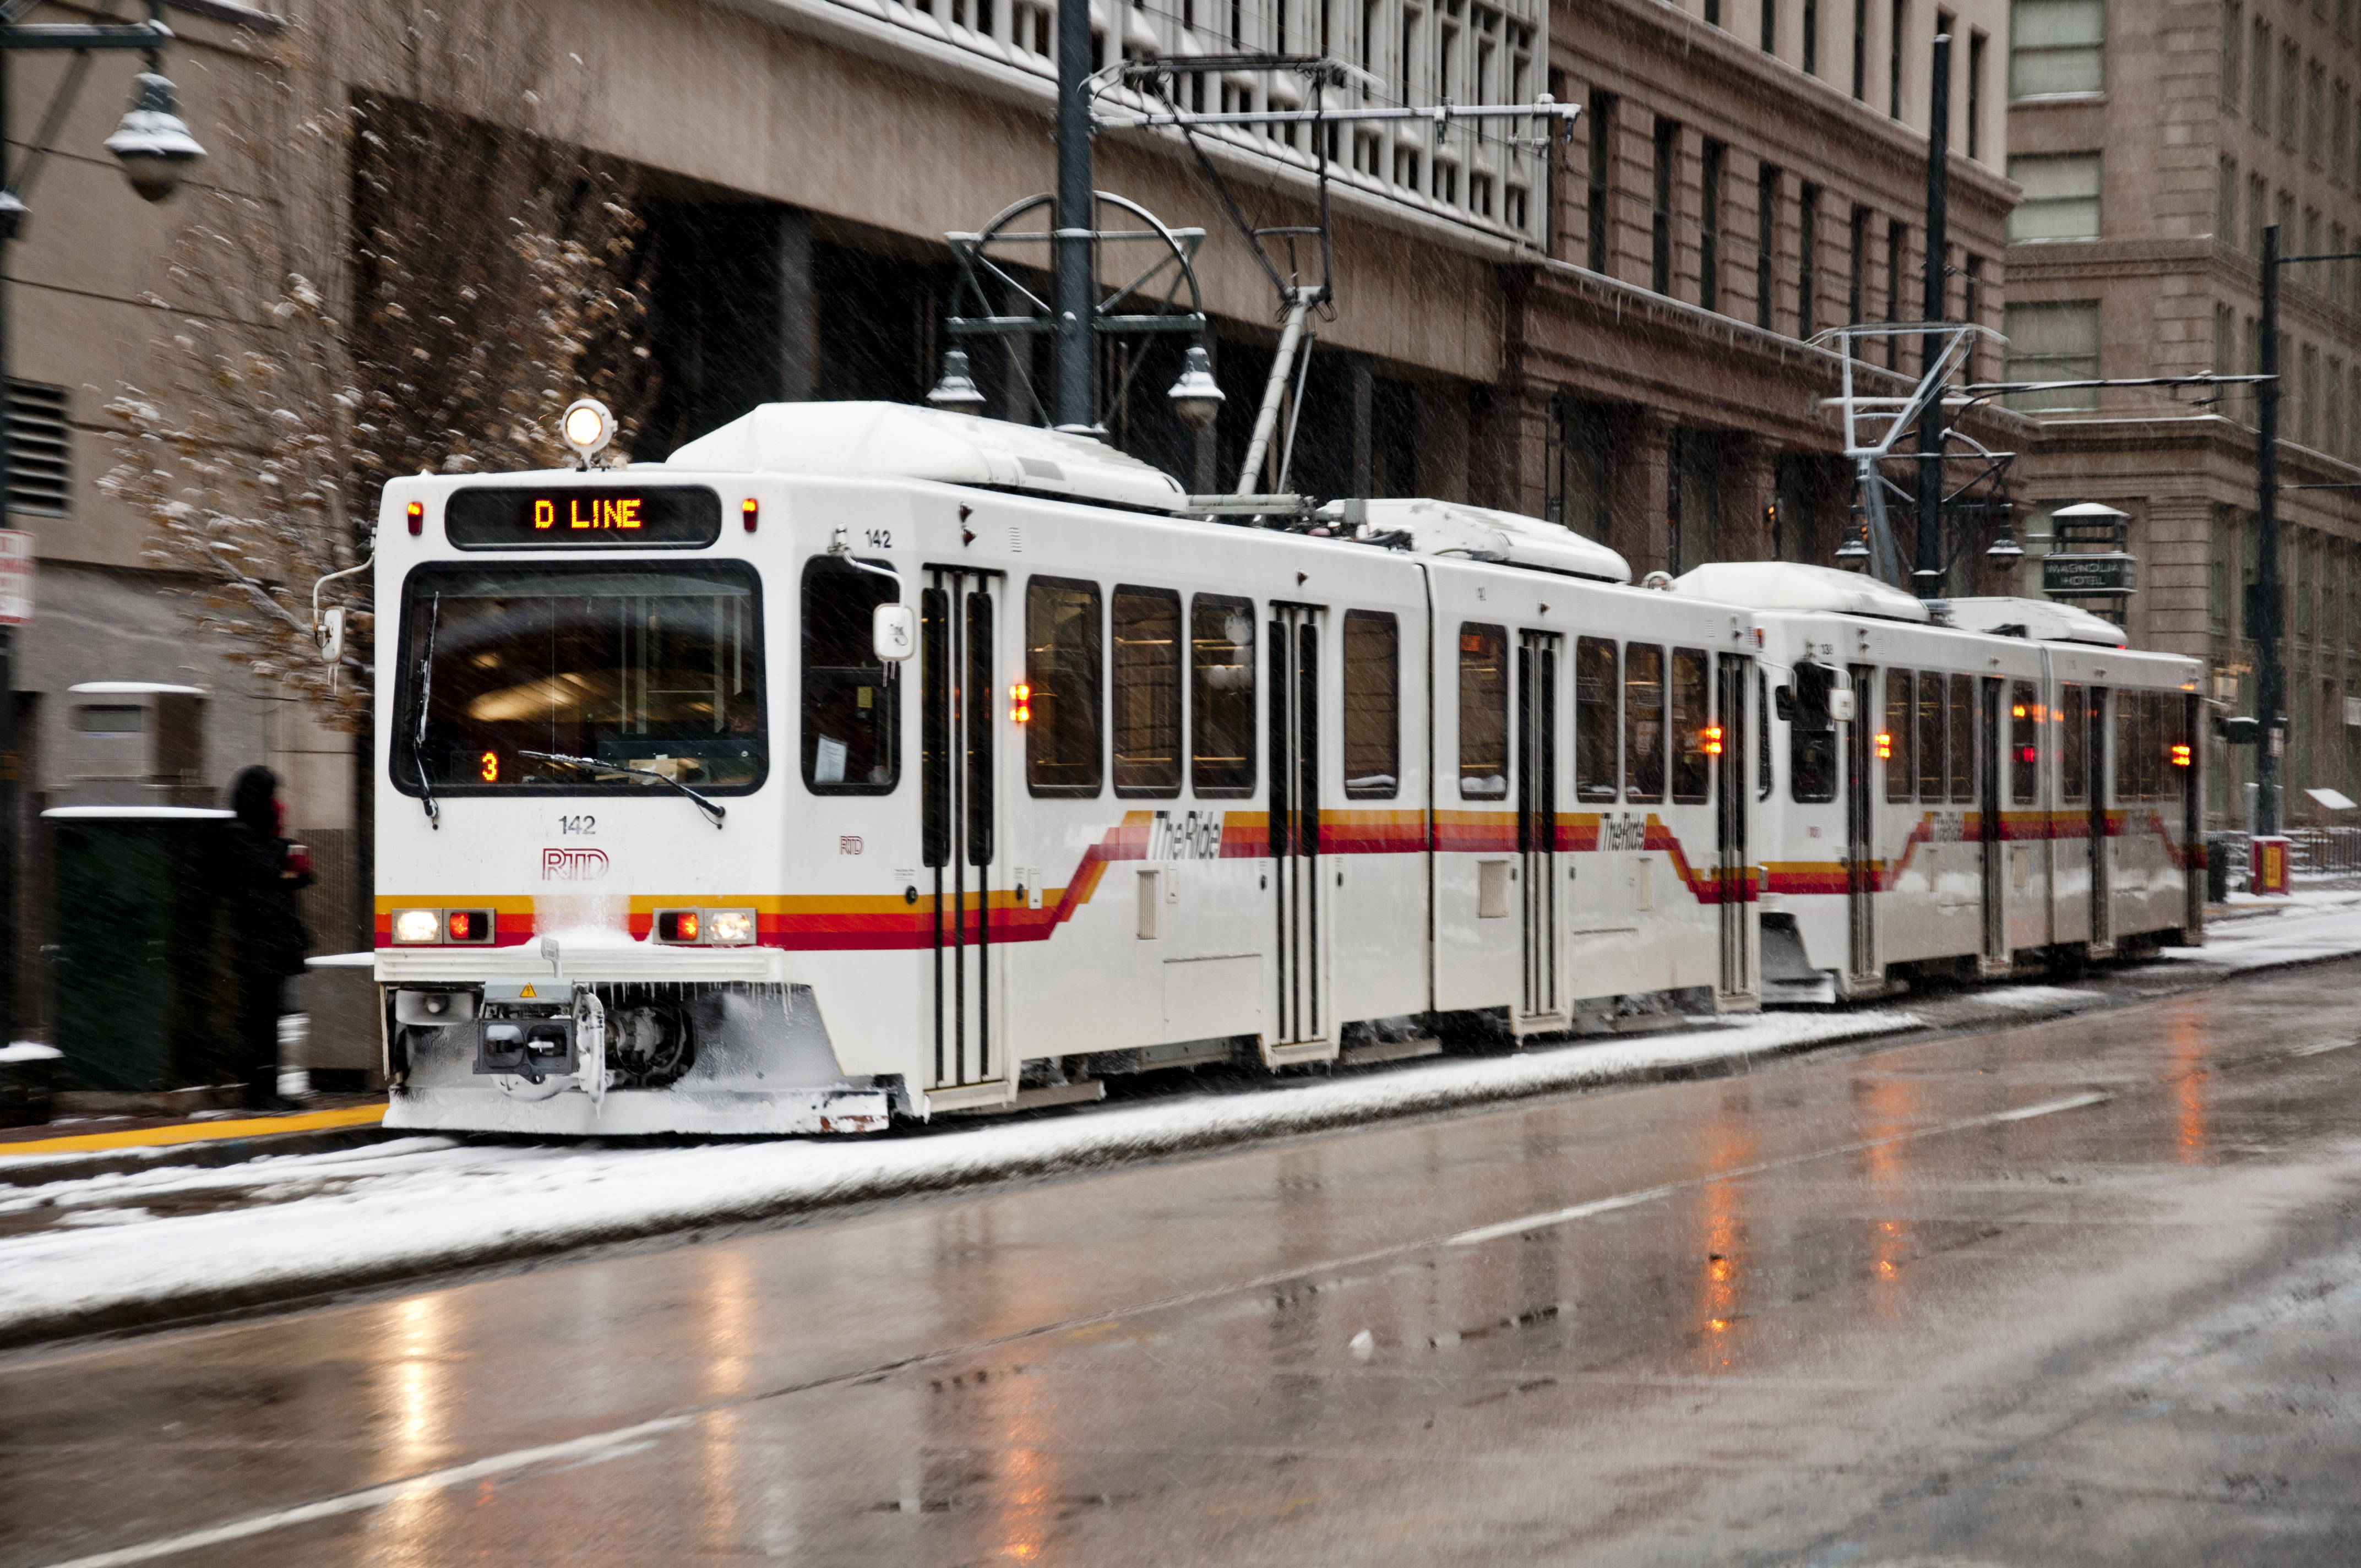 FileDenver LRVs in snow on Stout St in downtowng Wikimedia